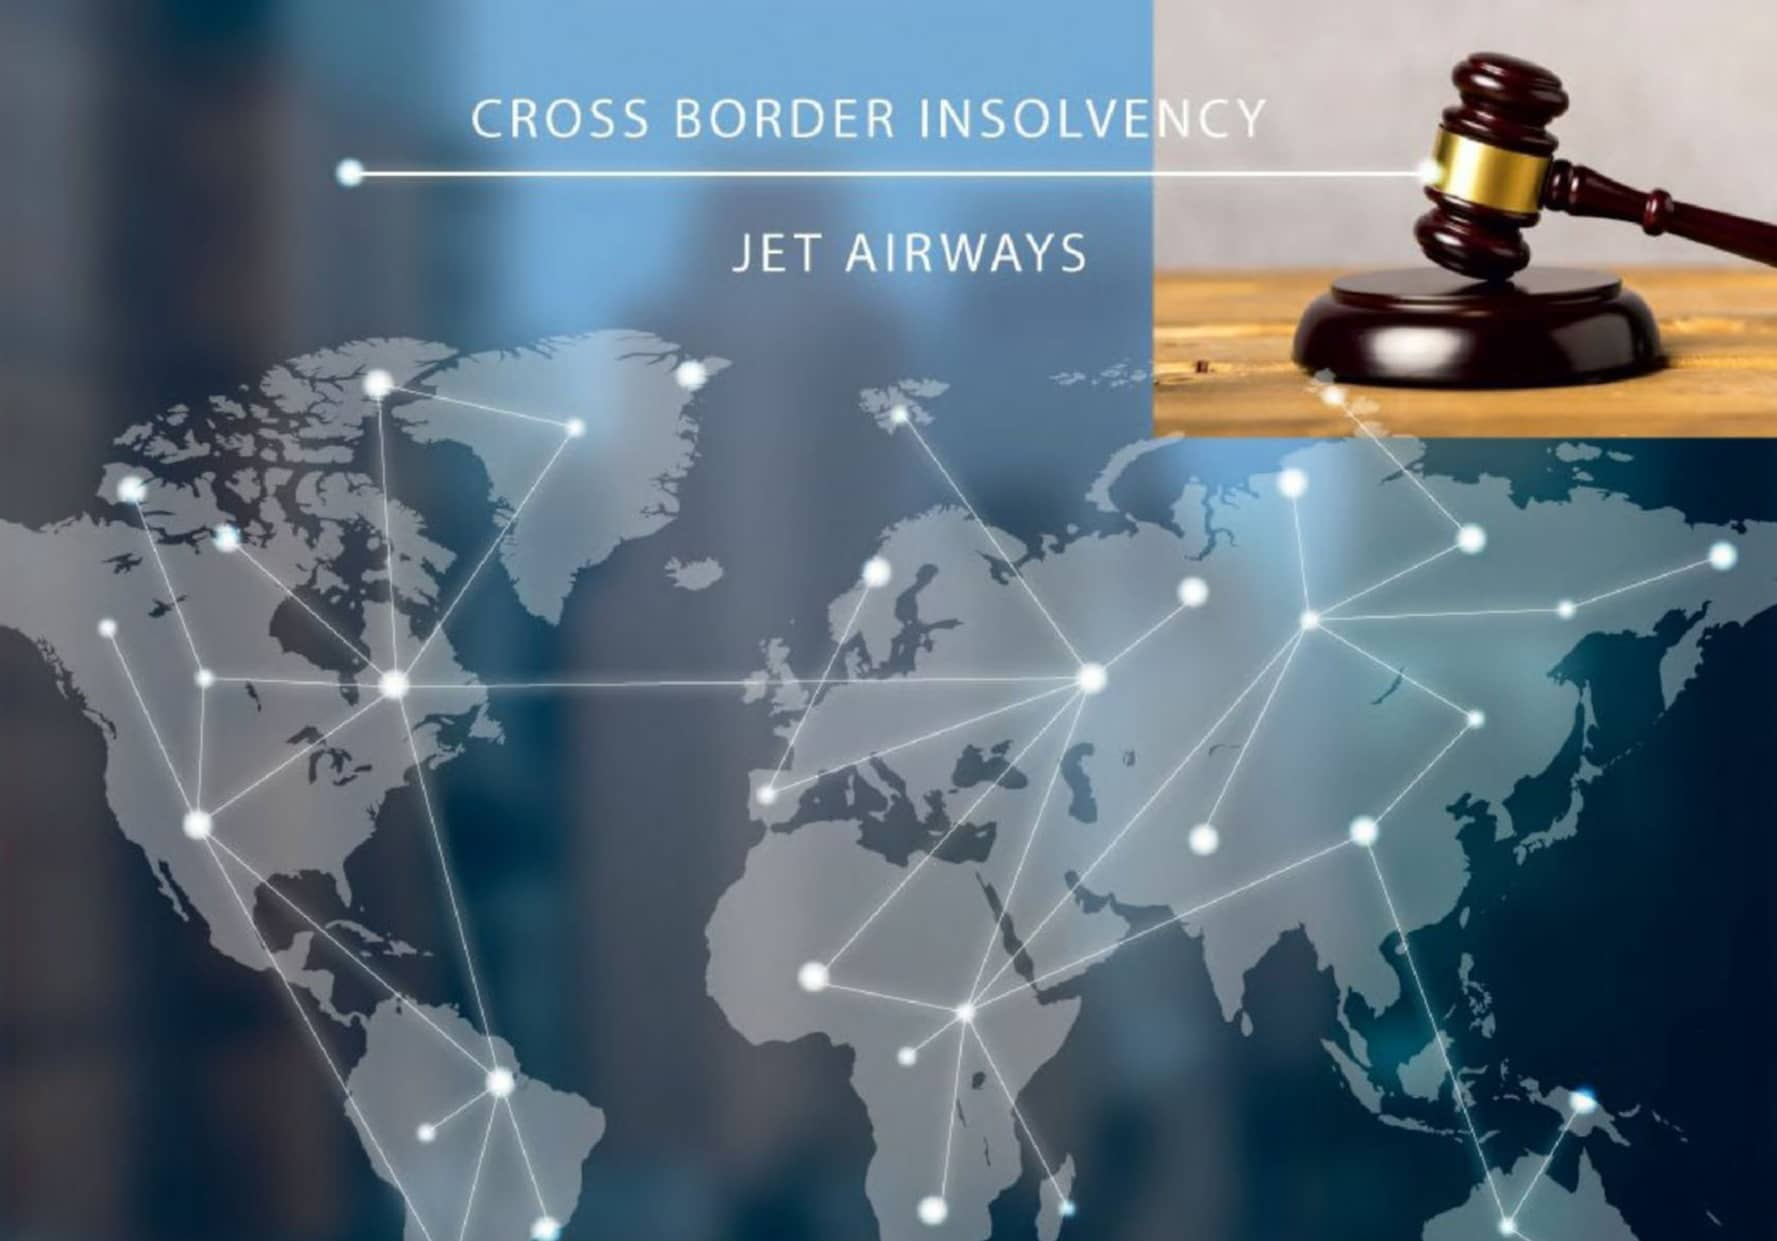 Jet Airways Cross Border Insolvency Proceedings